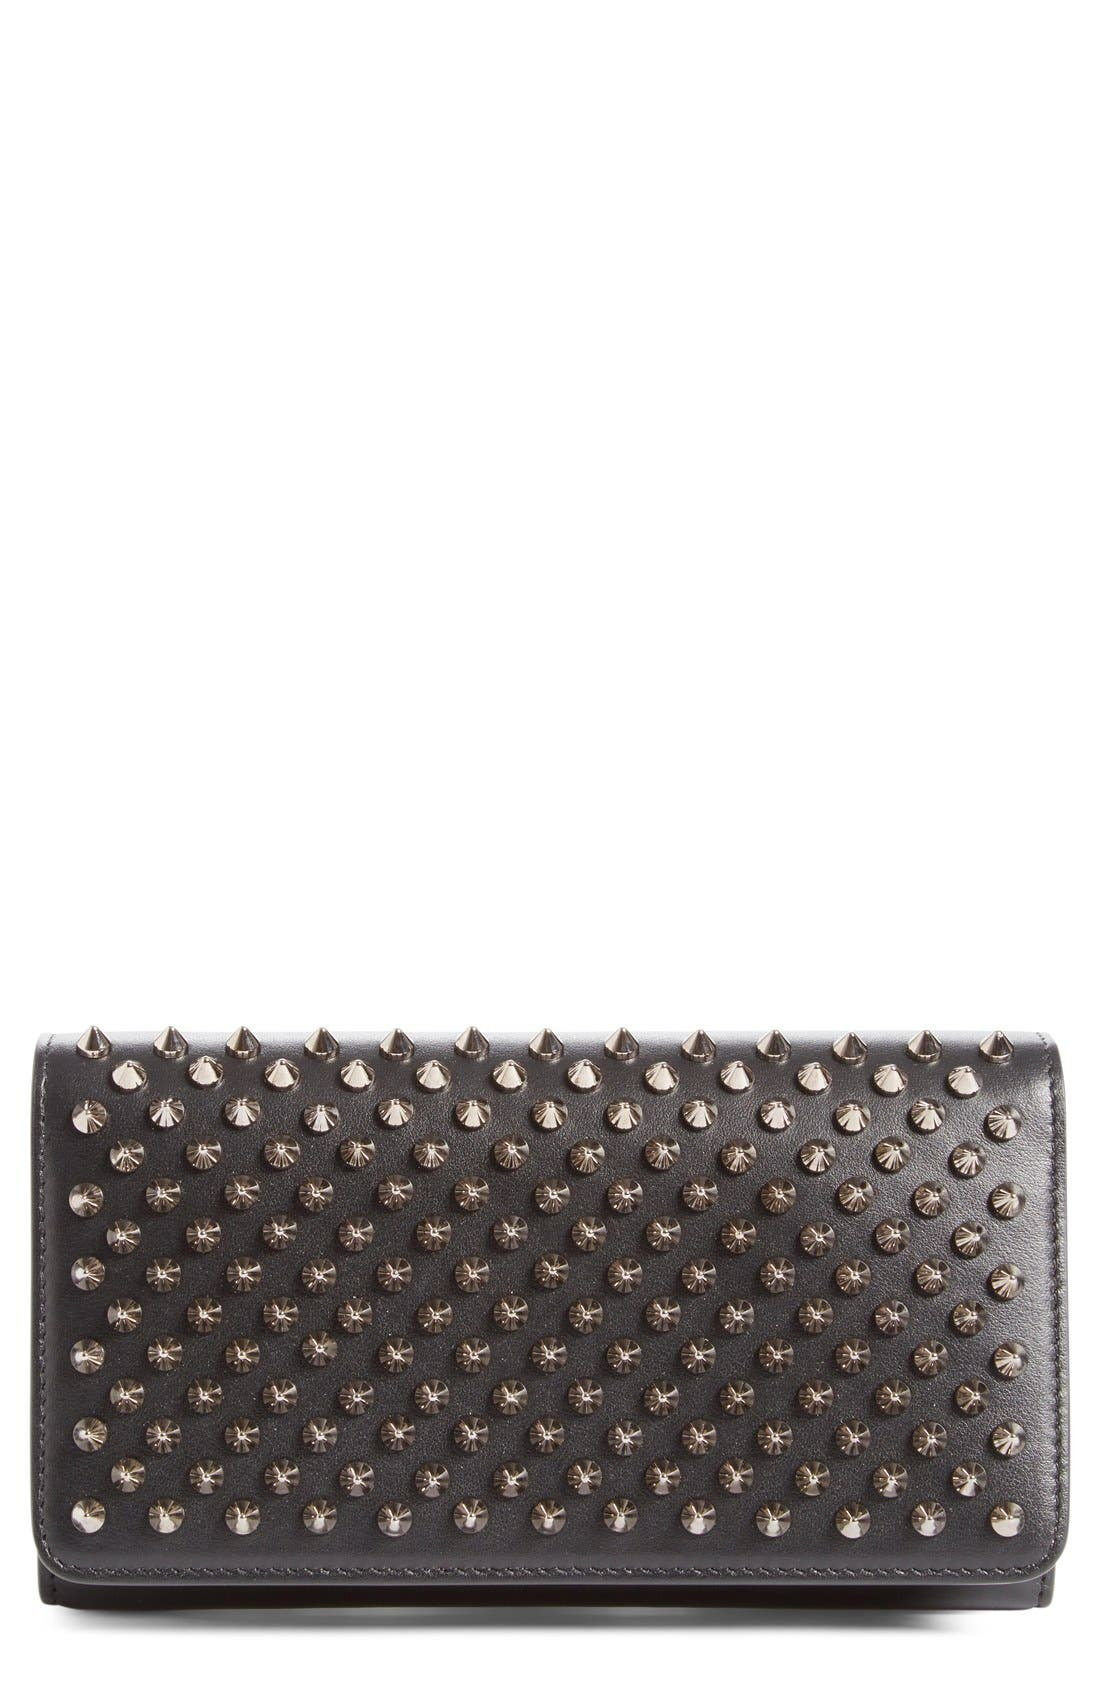 'Macaron' Studded Leather Continental Wallet,                             Main thumbnail 1, color,